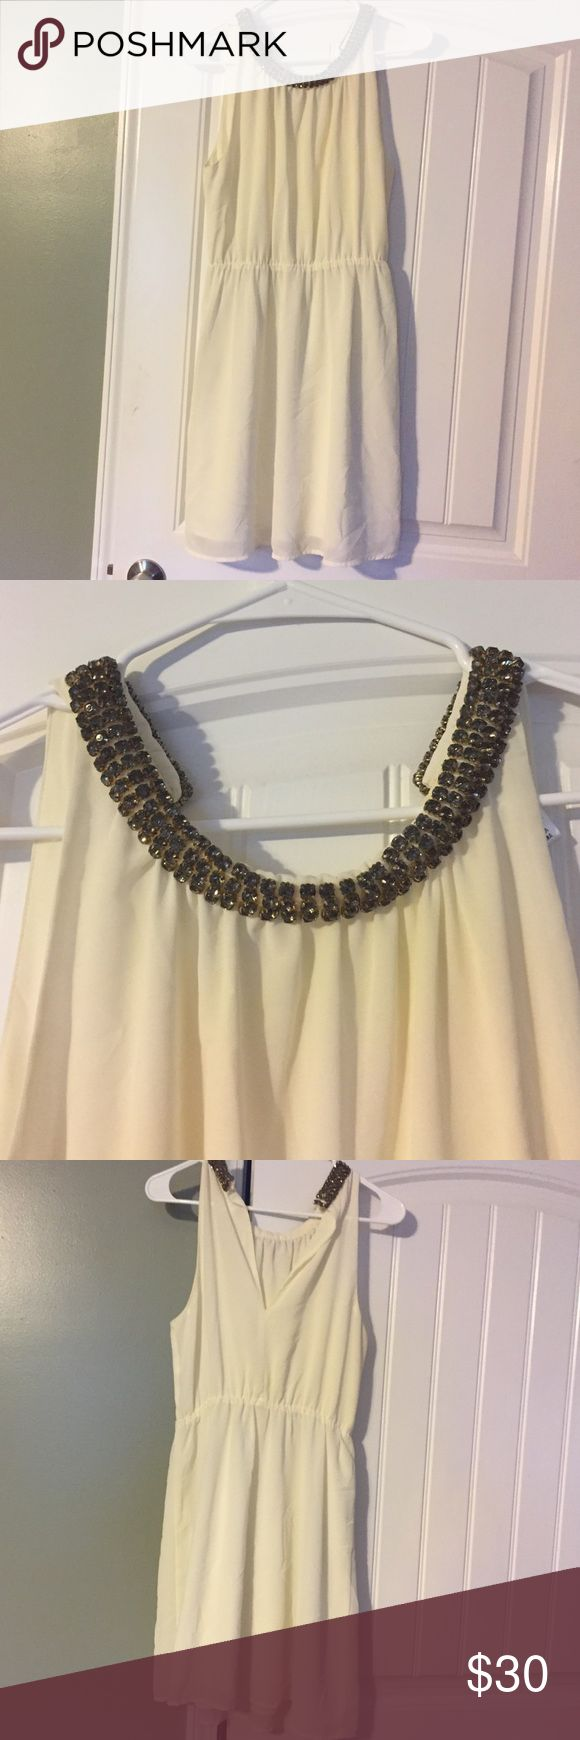 Elegant White Cocktail dress with gems! Worn once! Adorable on!....* These items are put up and not worn after pictures are taken Please note, I do my best to inspect and go into detail to my best ability on each item, please ask any and all questions before purchasing* I really want everyone to be satisfied and ❤️ their items! Esley Dresses